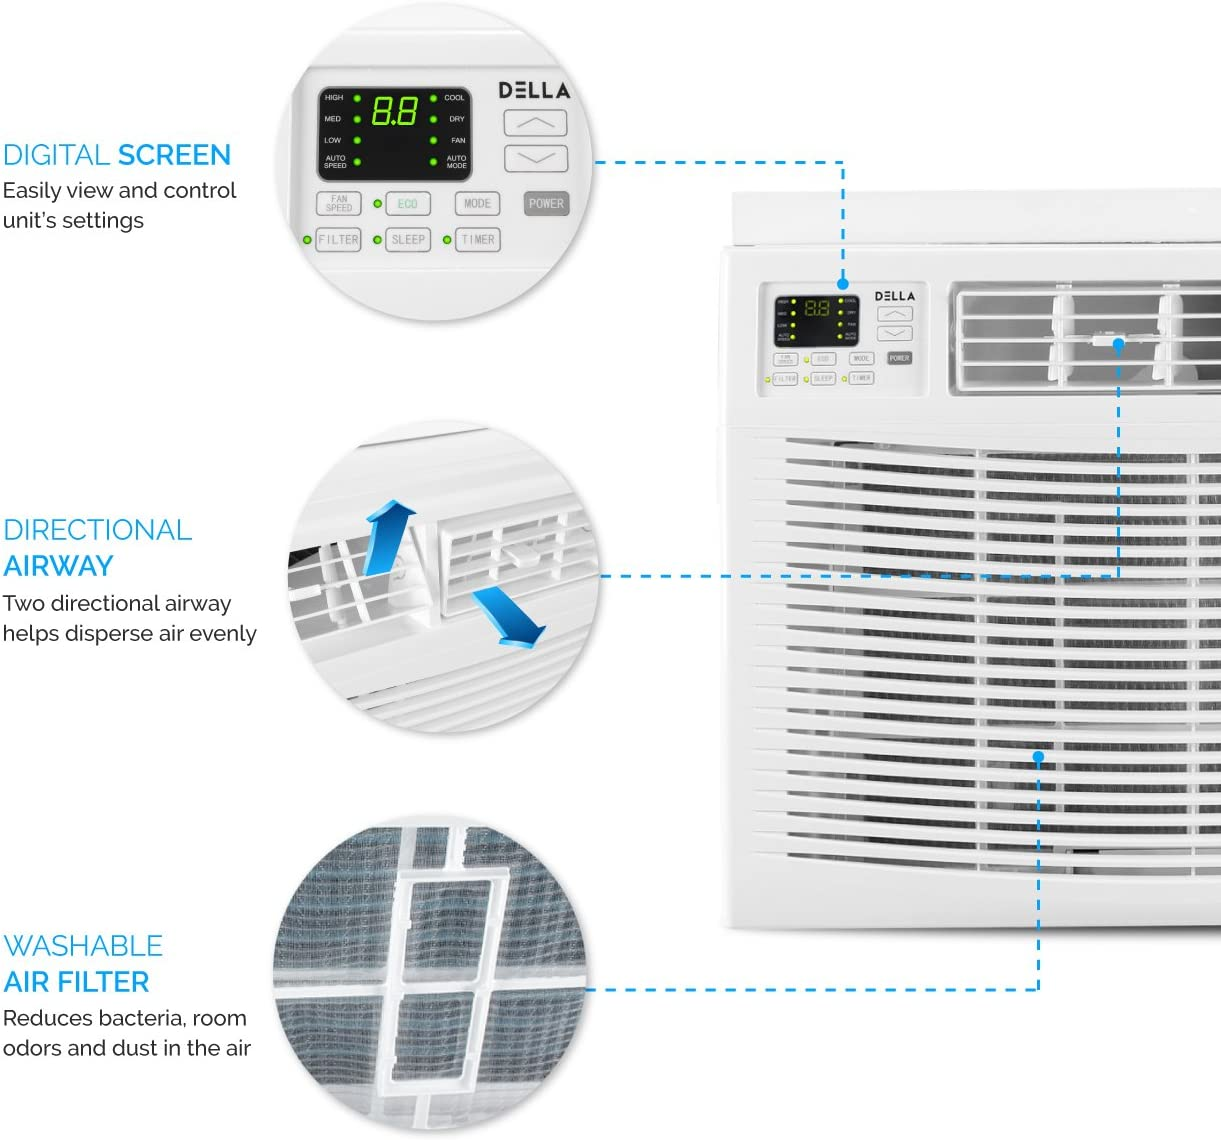 Della 6000 BTU 110V Window-Mounted Compact Air Conditioner 690W 12.2 Energy Star Window Air Conditioner with 46 Pint//24hrs Dehumification Digital Display with Remote EER